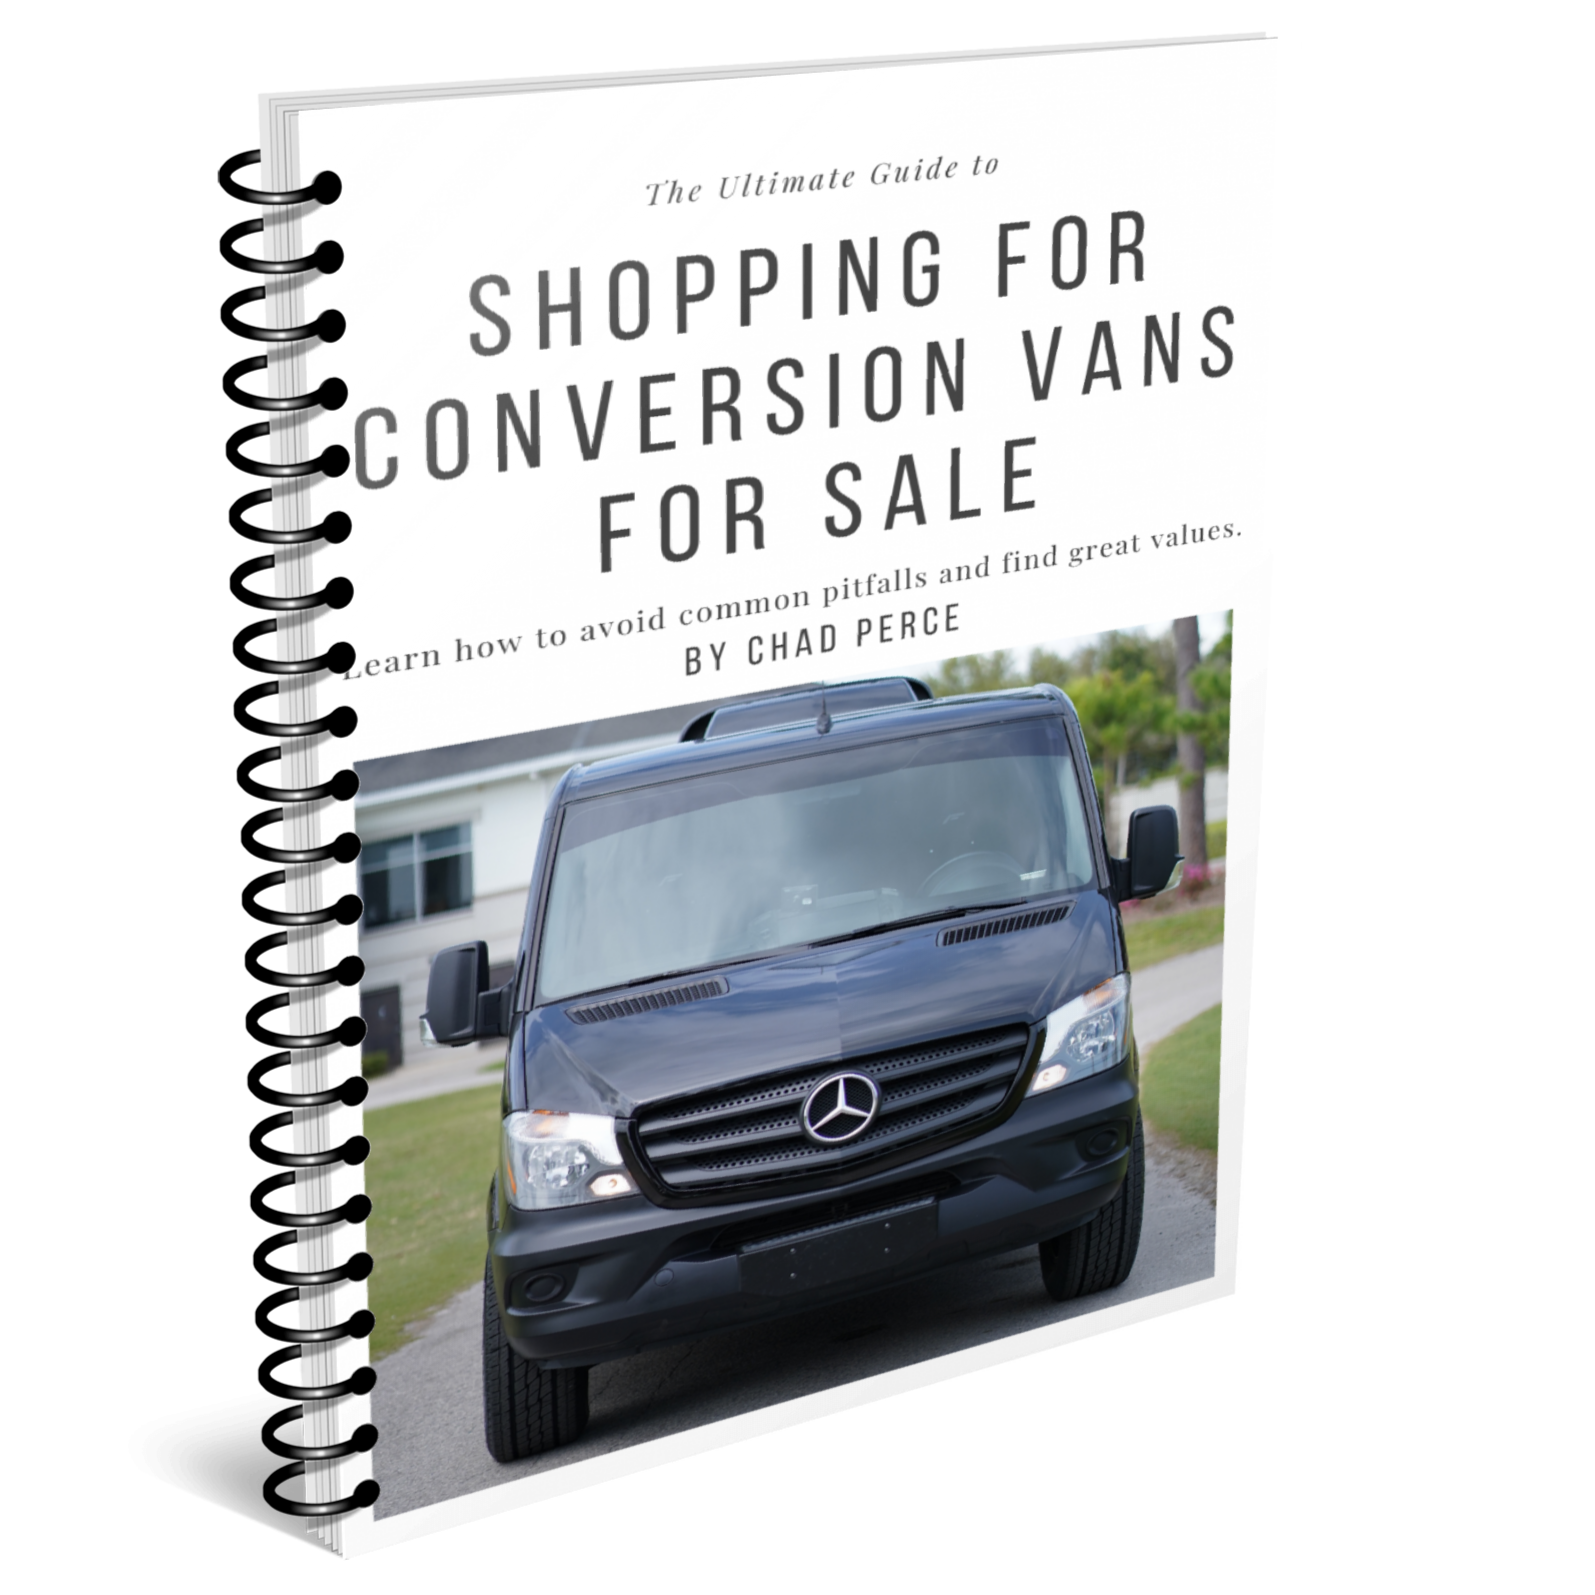 The Ultimate Guide to Shopping for Conversion Vans for Sale